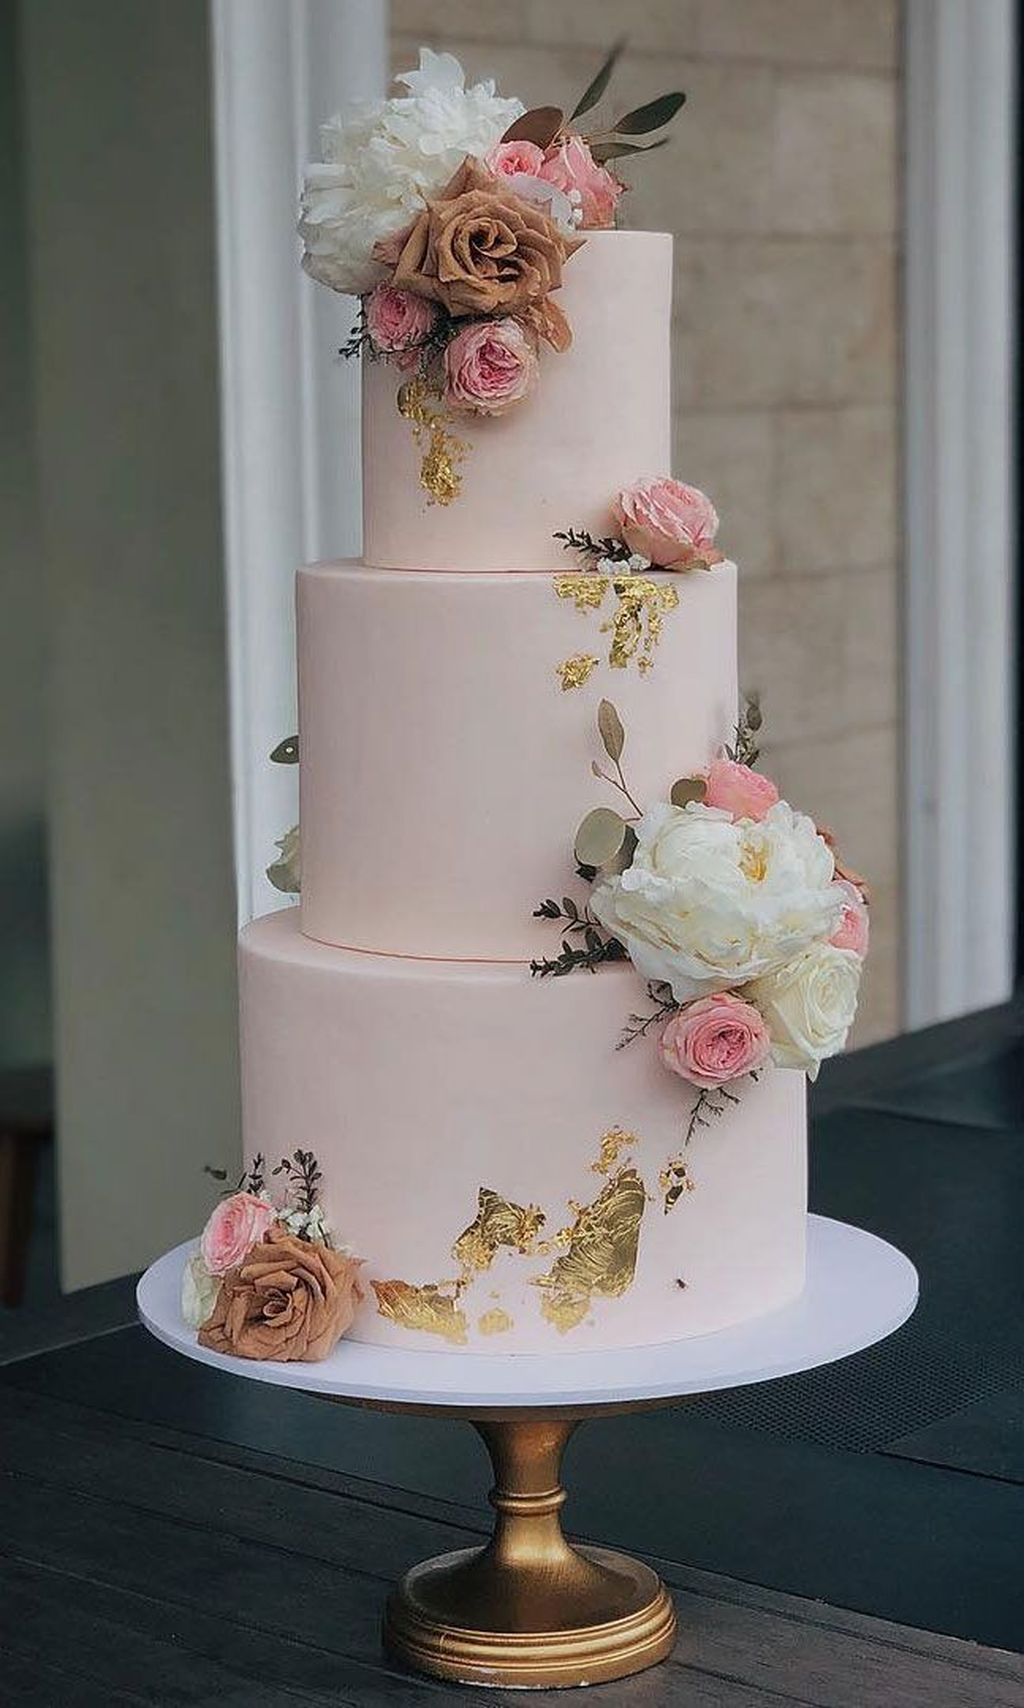 38 Extraordinary Themed Wedding Cake Designs Ideas To Try Asap In 2020 Pretty Wedding Cakes Cool Wedding Cakes Beautiful Wedding Cakes